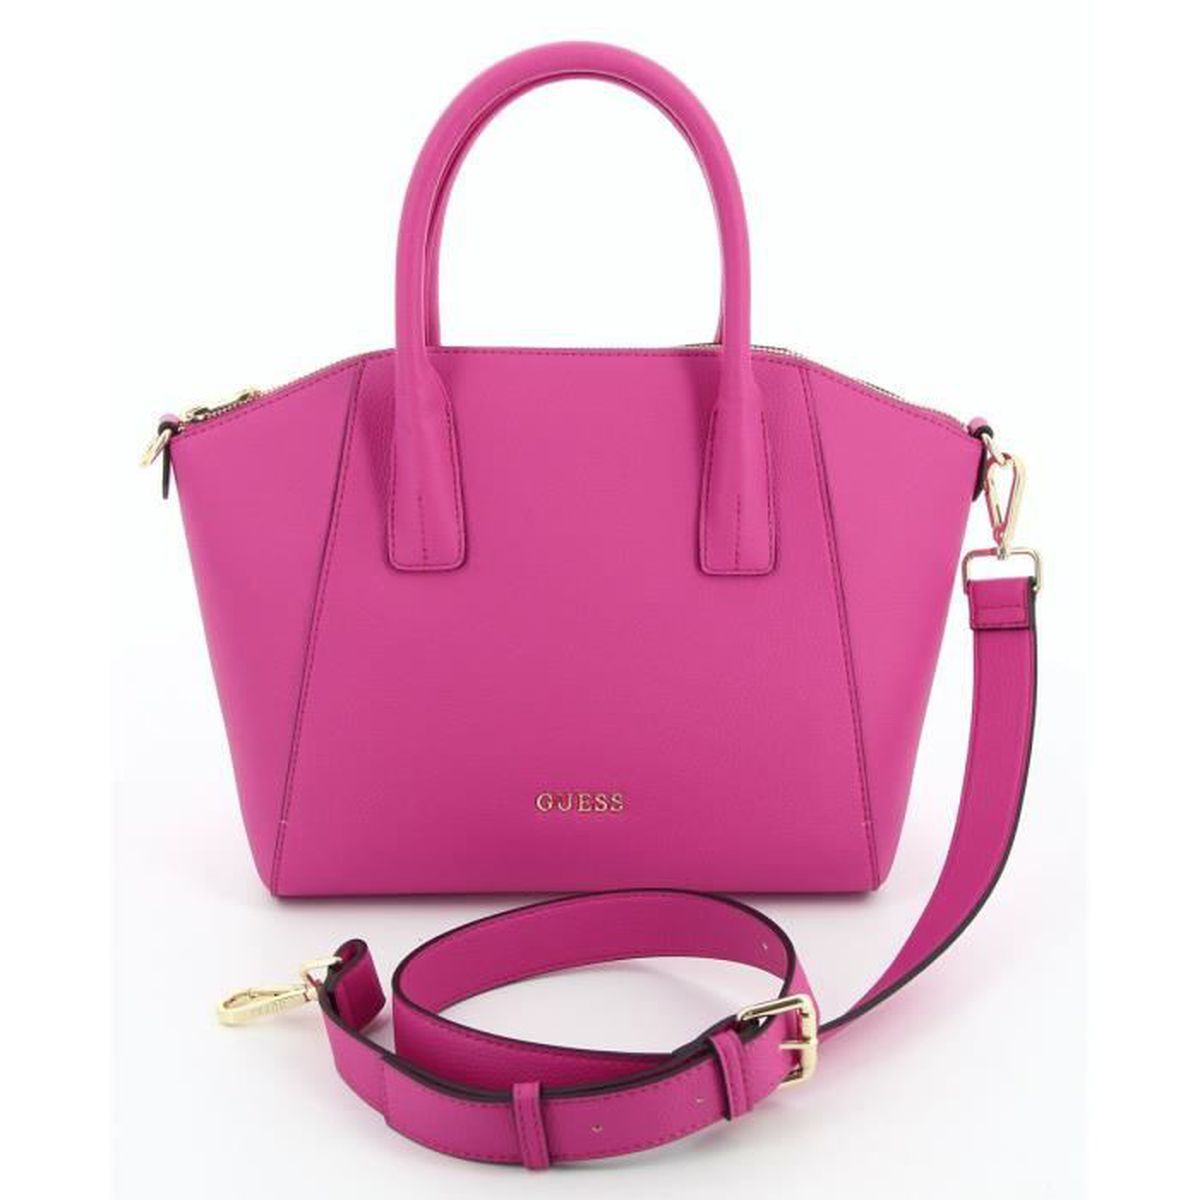 Guess 28 Sac À P7276Pin Main Taille Isabeauhwisap Cm Achat 0N8nwmv